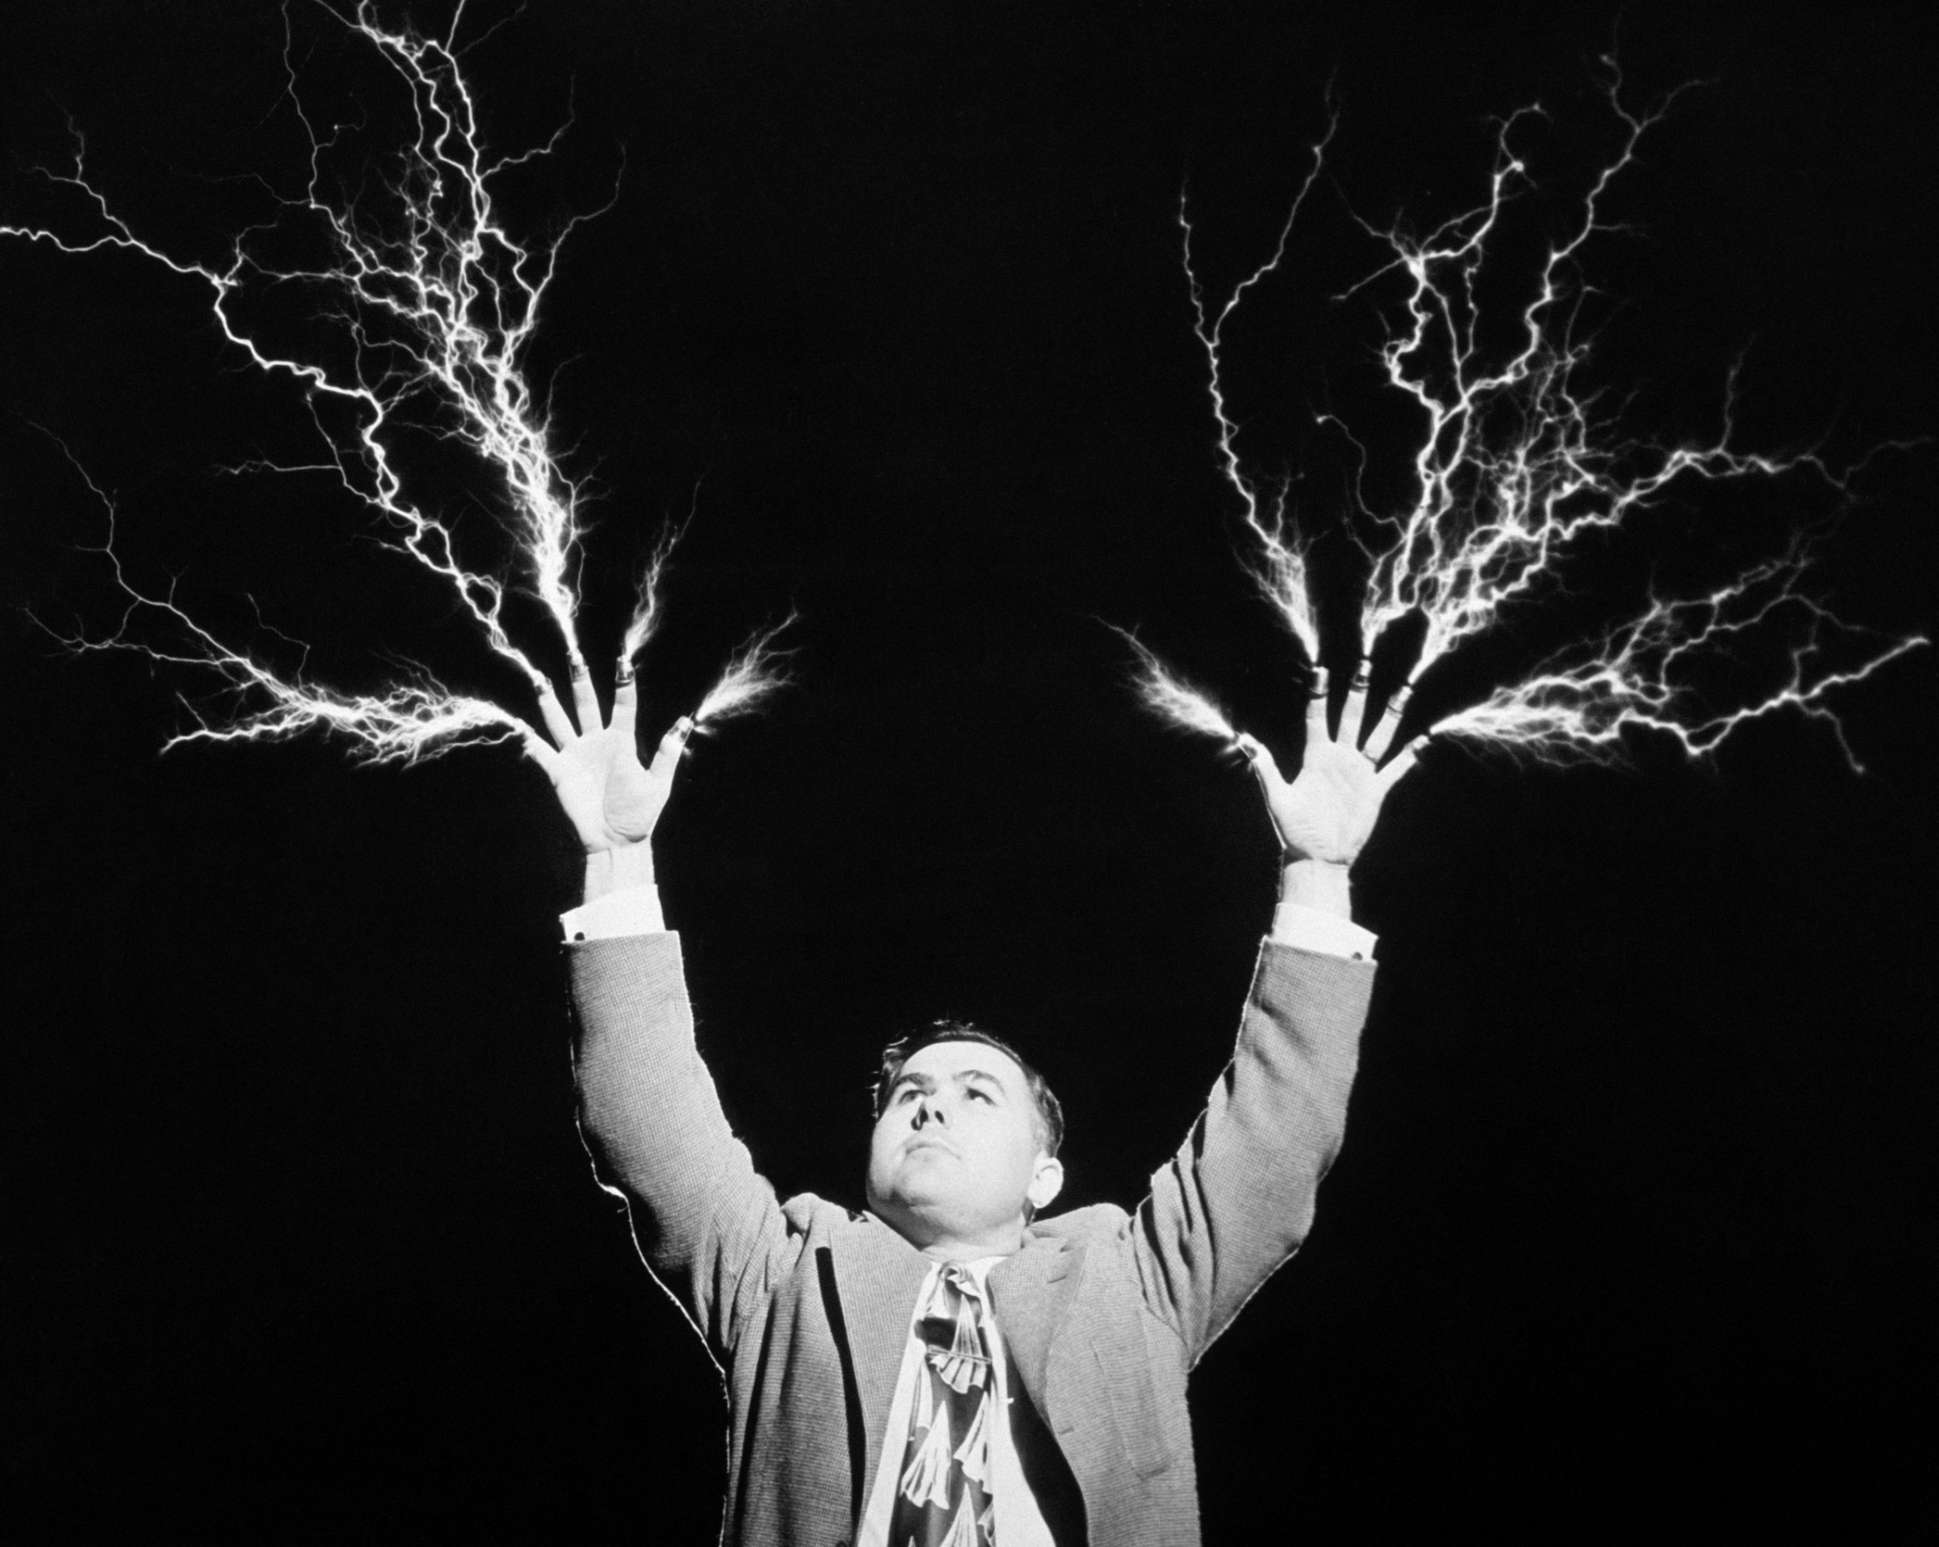 This mad scientist is shooting lightning from his fingertips.